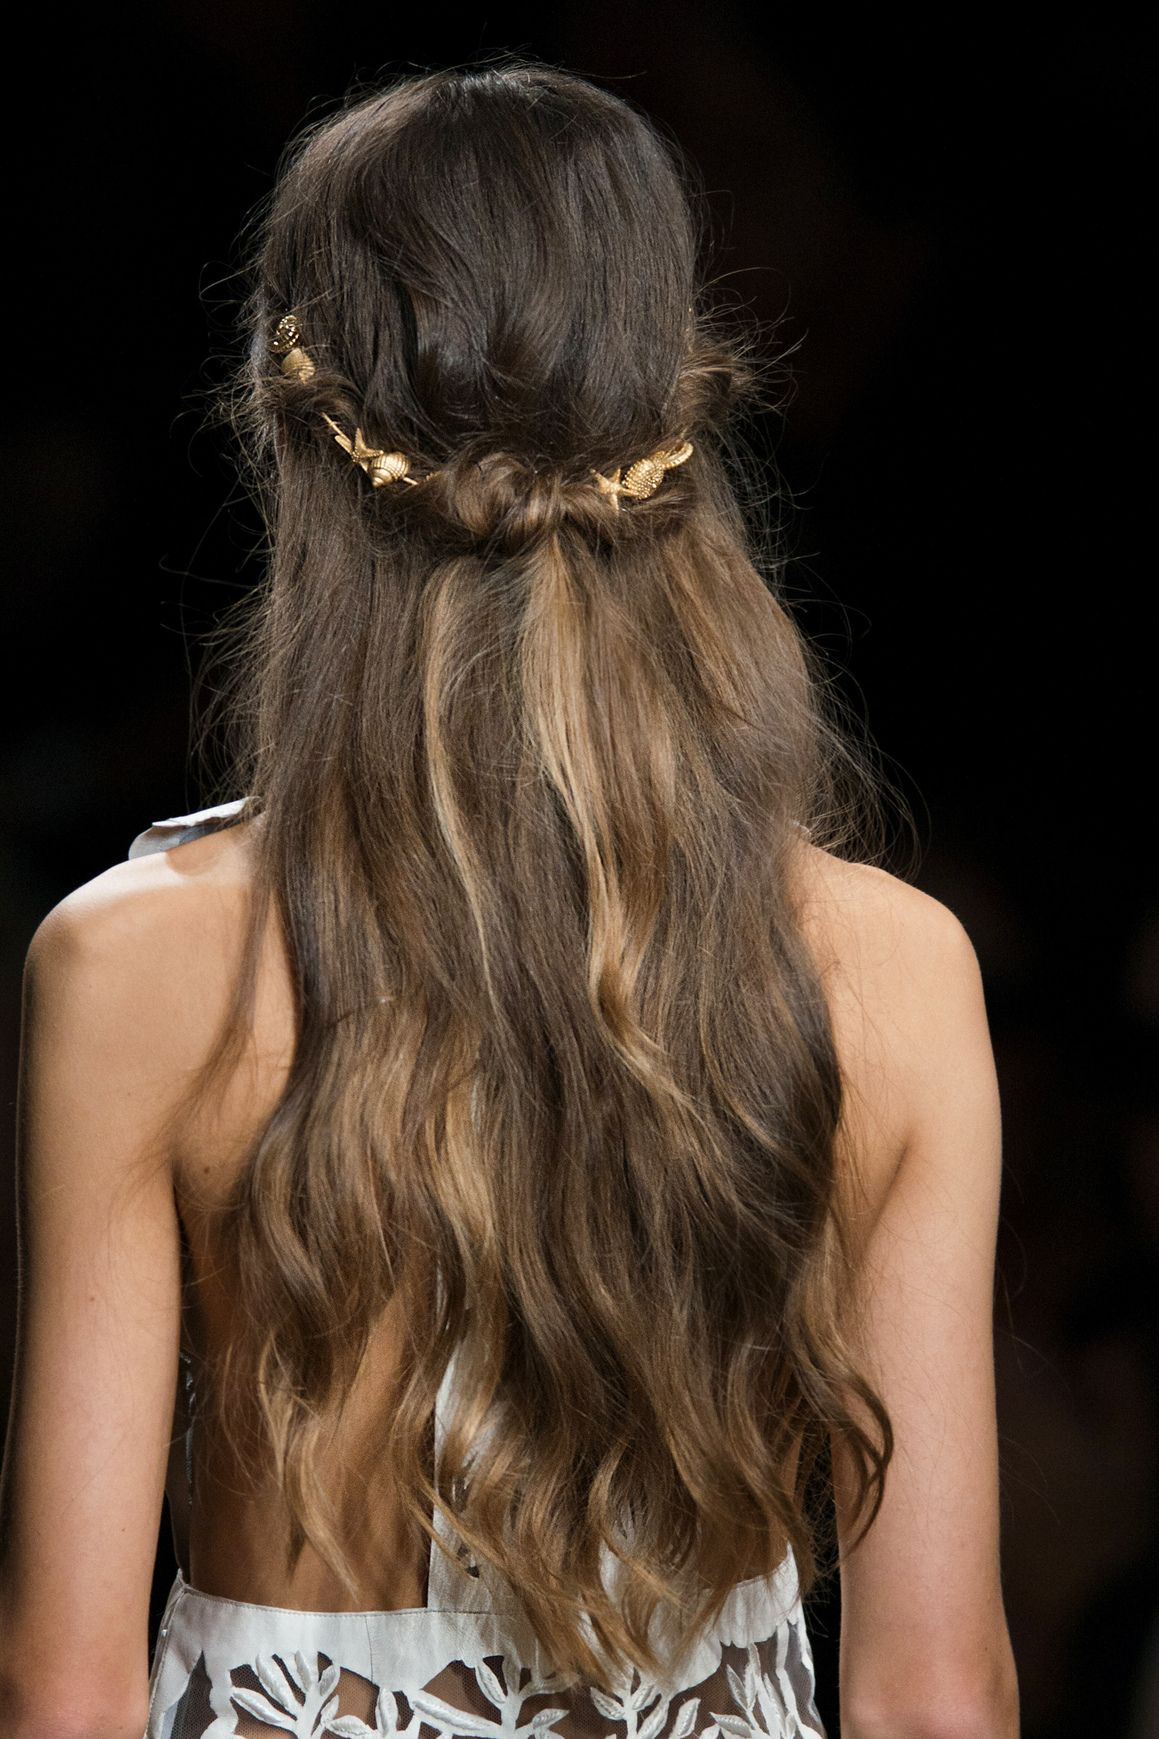 10 Music Festival Hairstyles That Are Just as Perfect for Prom